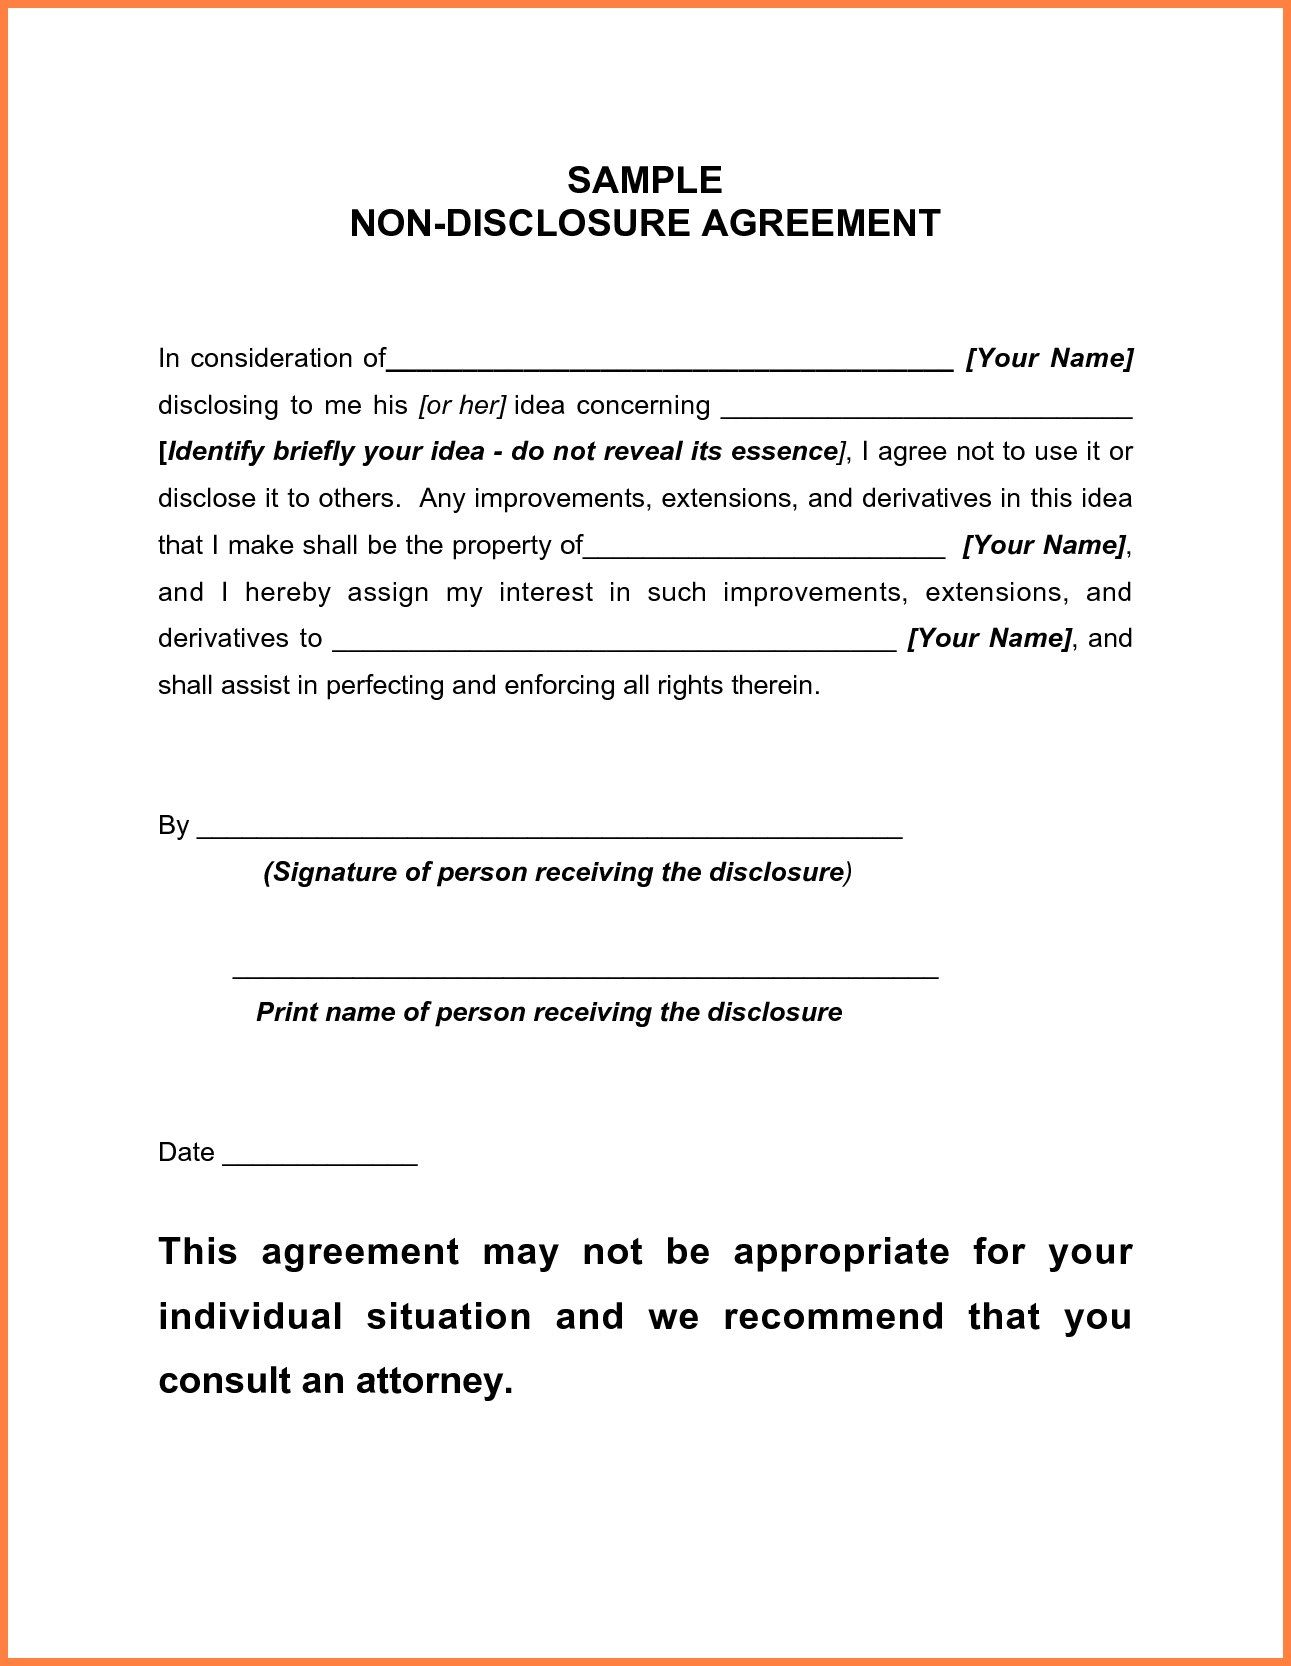 Basic Non Disclosure Agreement Emmamcintyrephotography With Standard Confidentiality Agreement Template 10 In 2020 Non Disclosure Agreement Contract Template Words